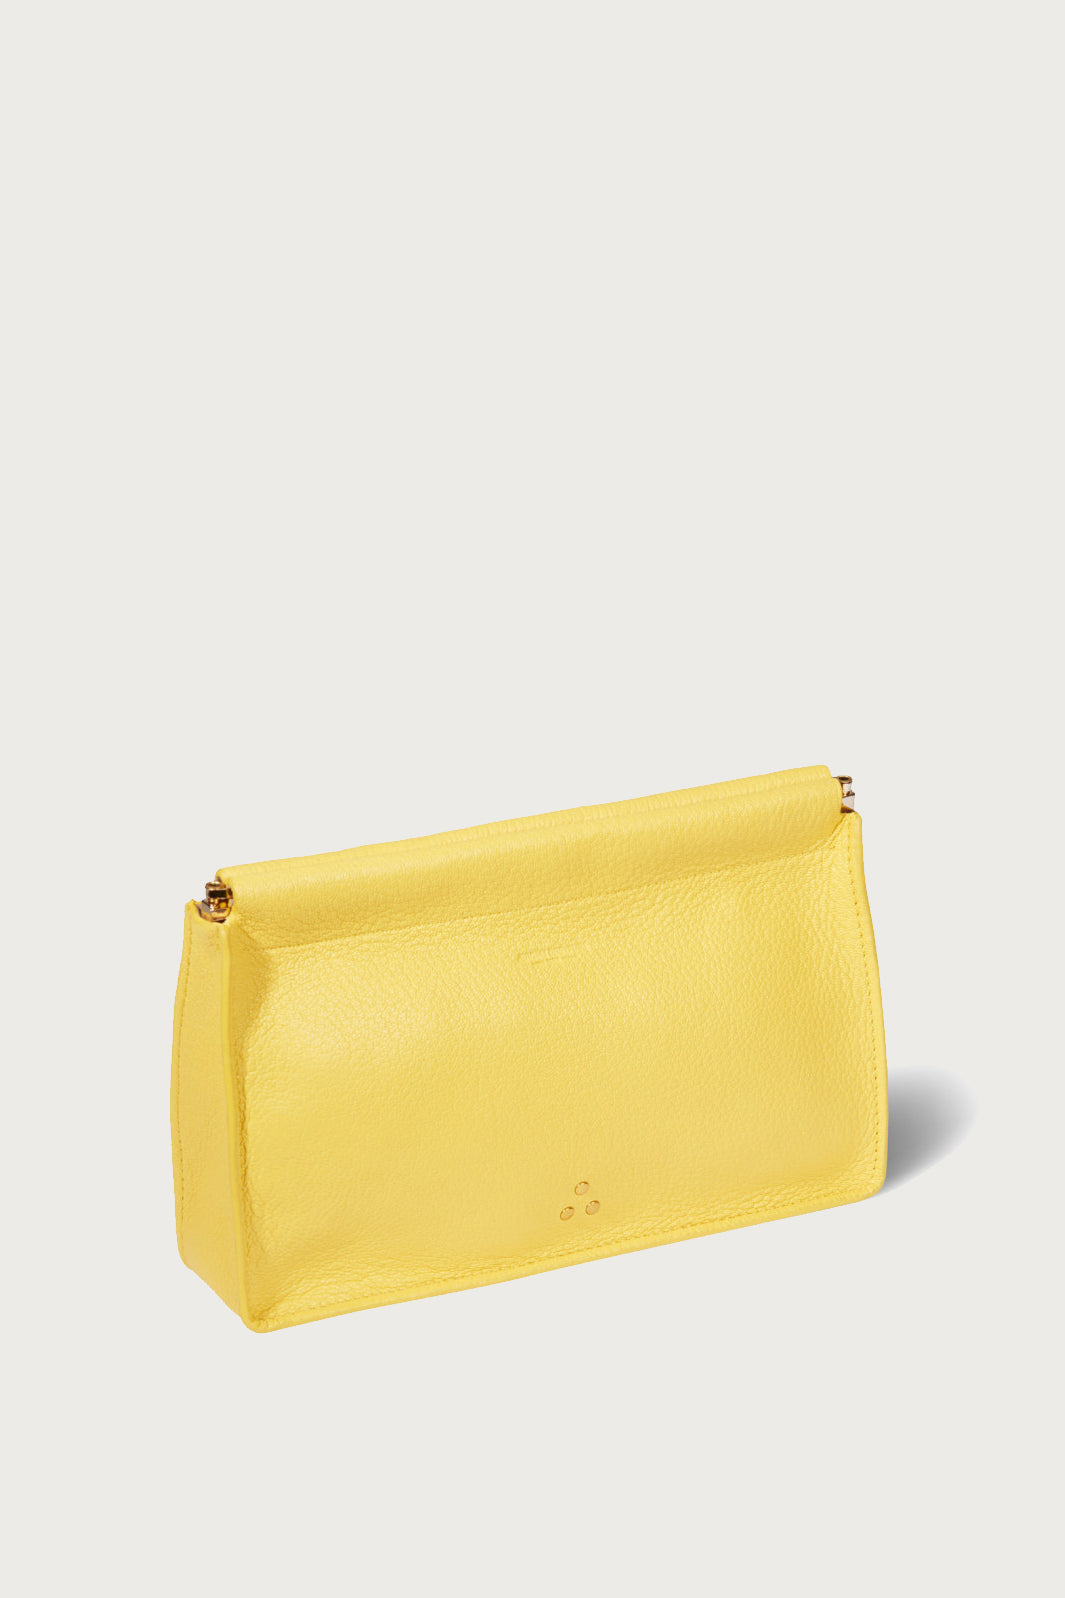 Jerome Dreyfuss Clic Clac Clutch in Mimosa - Vert & Vogue